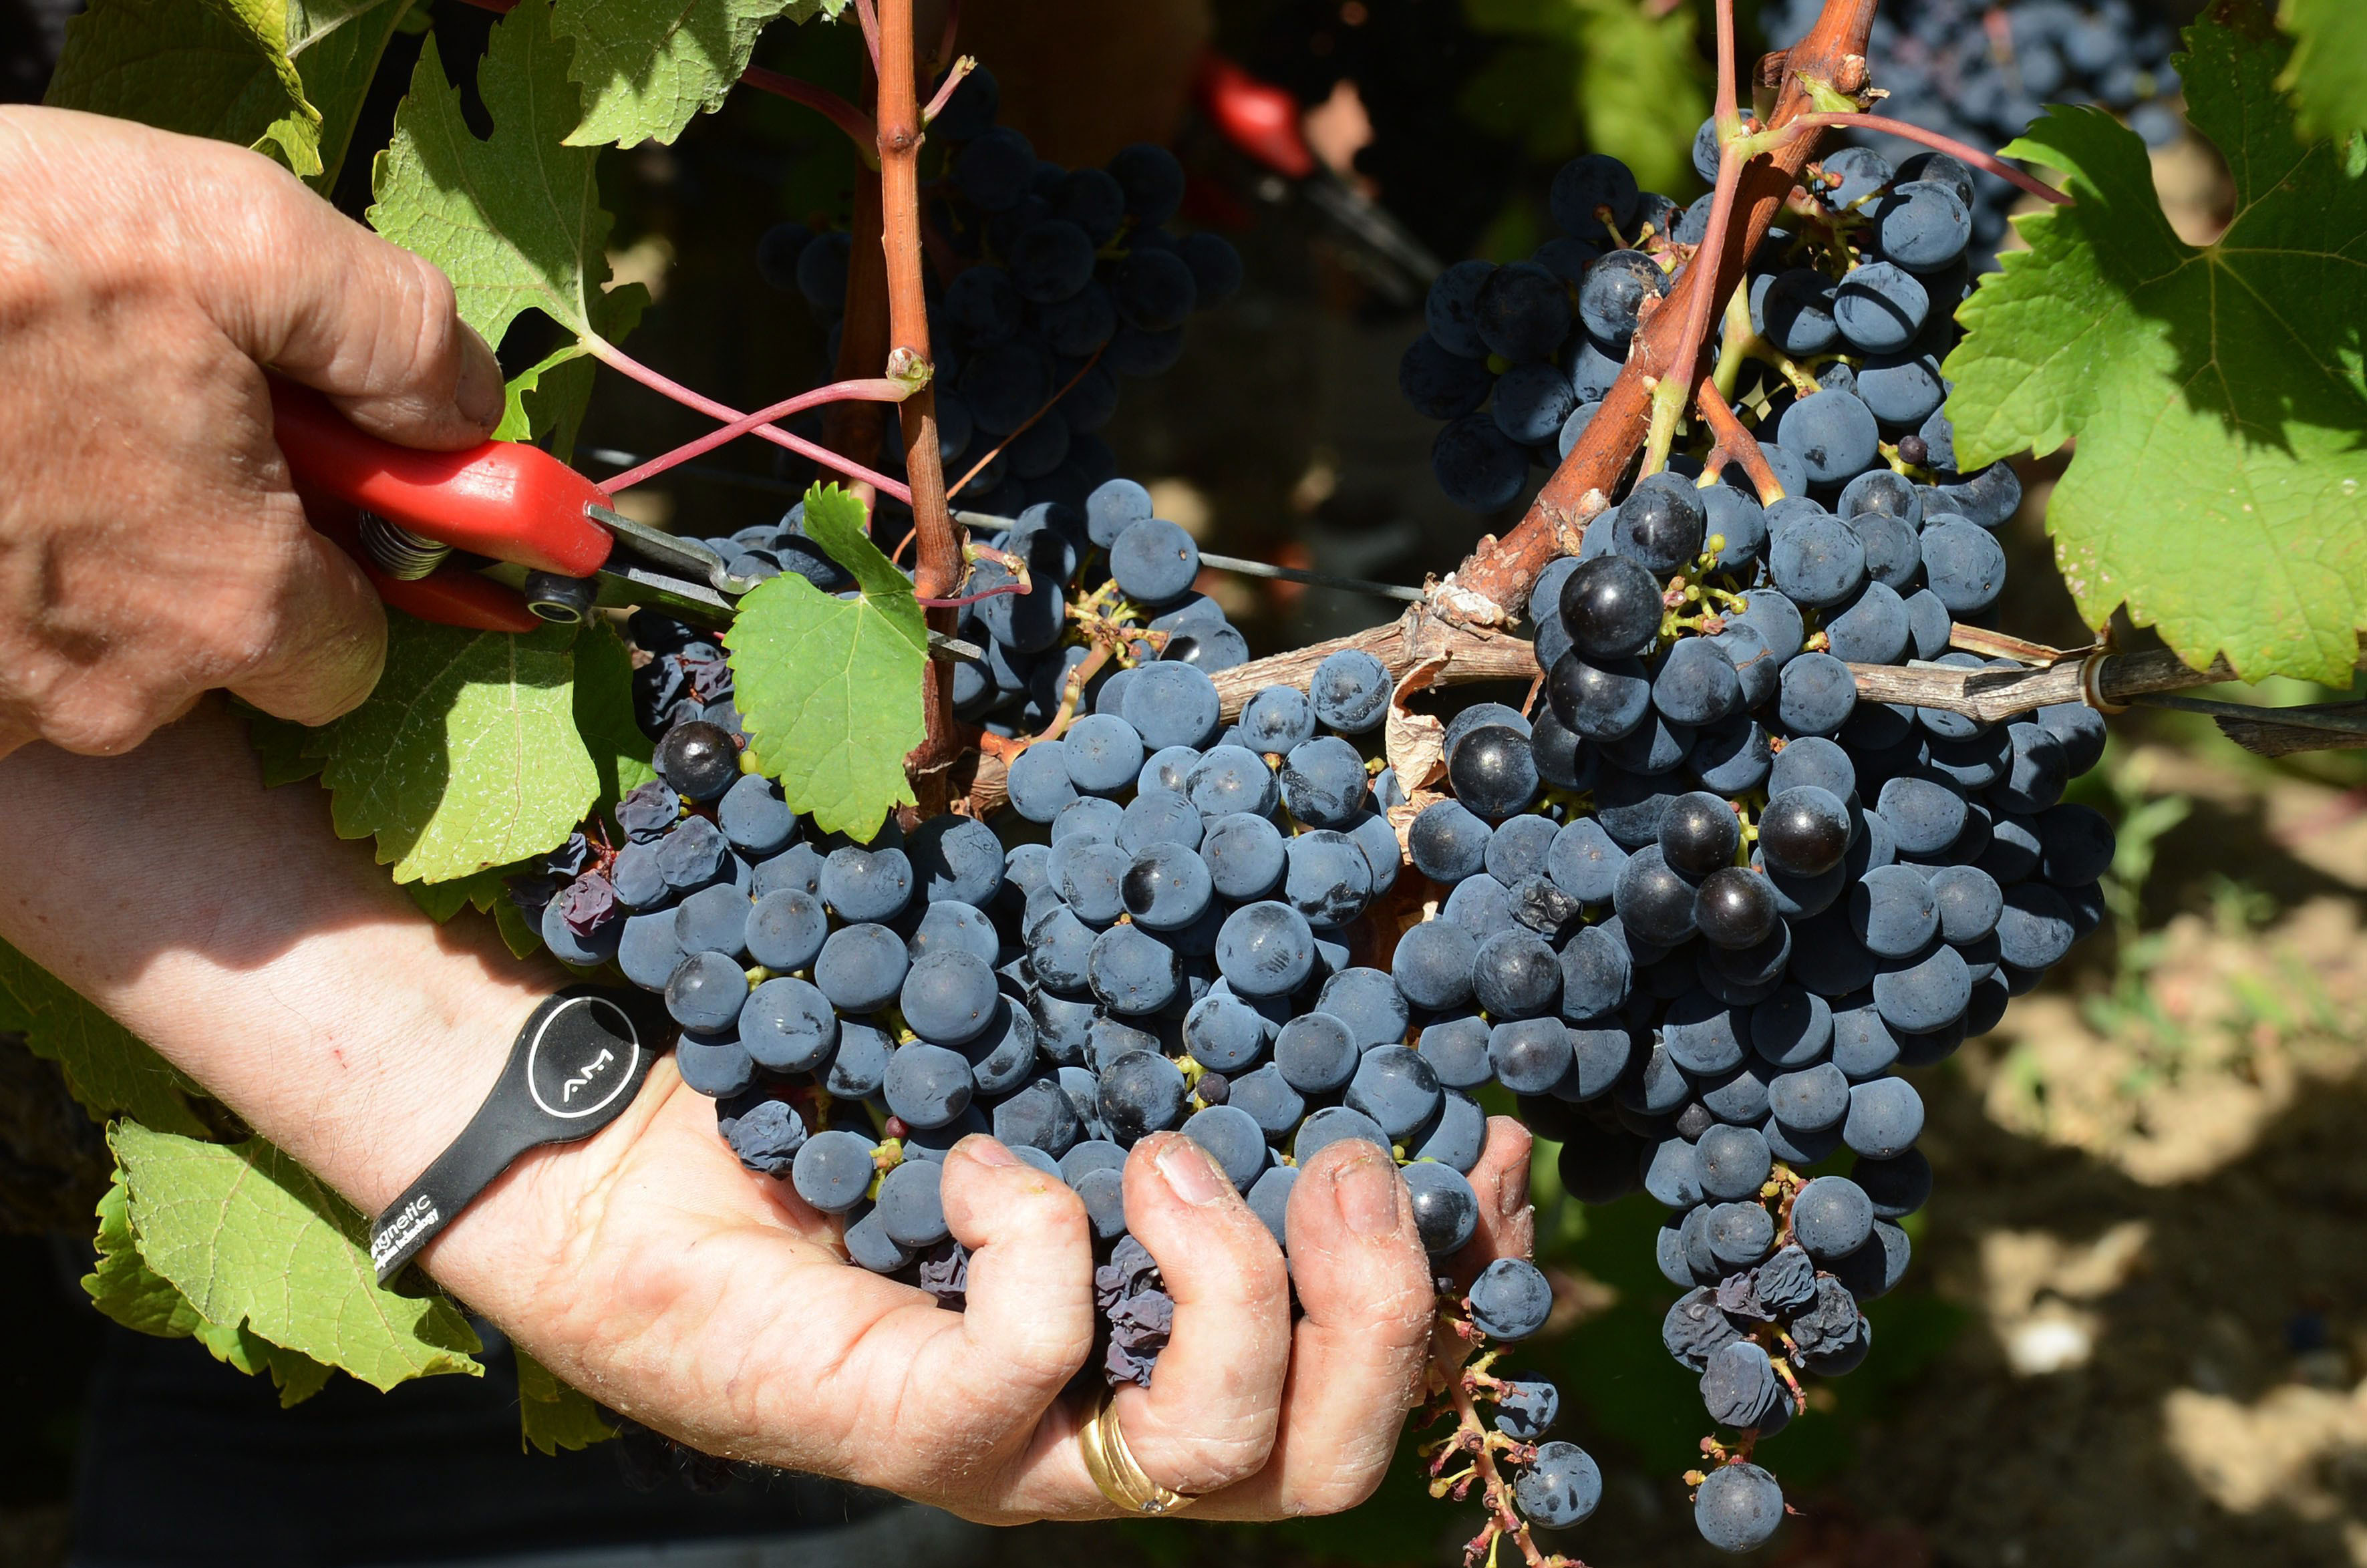 With Warming Climes, How Long Will A Bordeaux Be A Bordeaux?